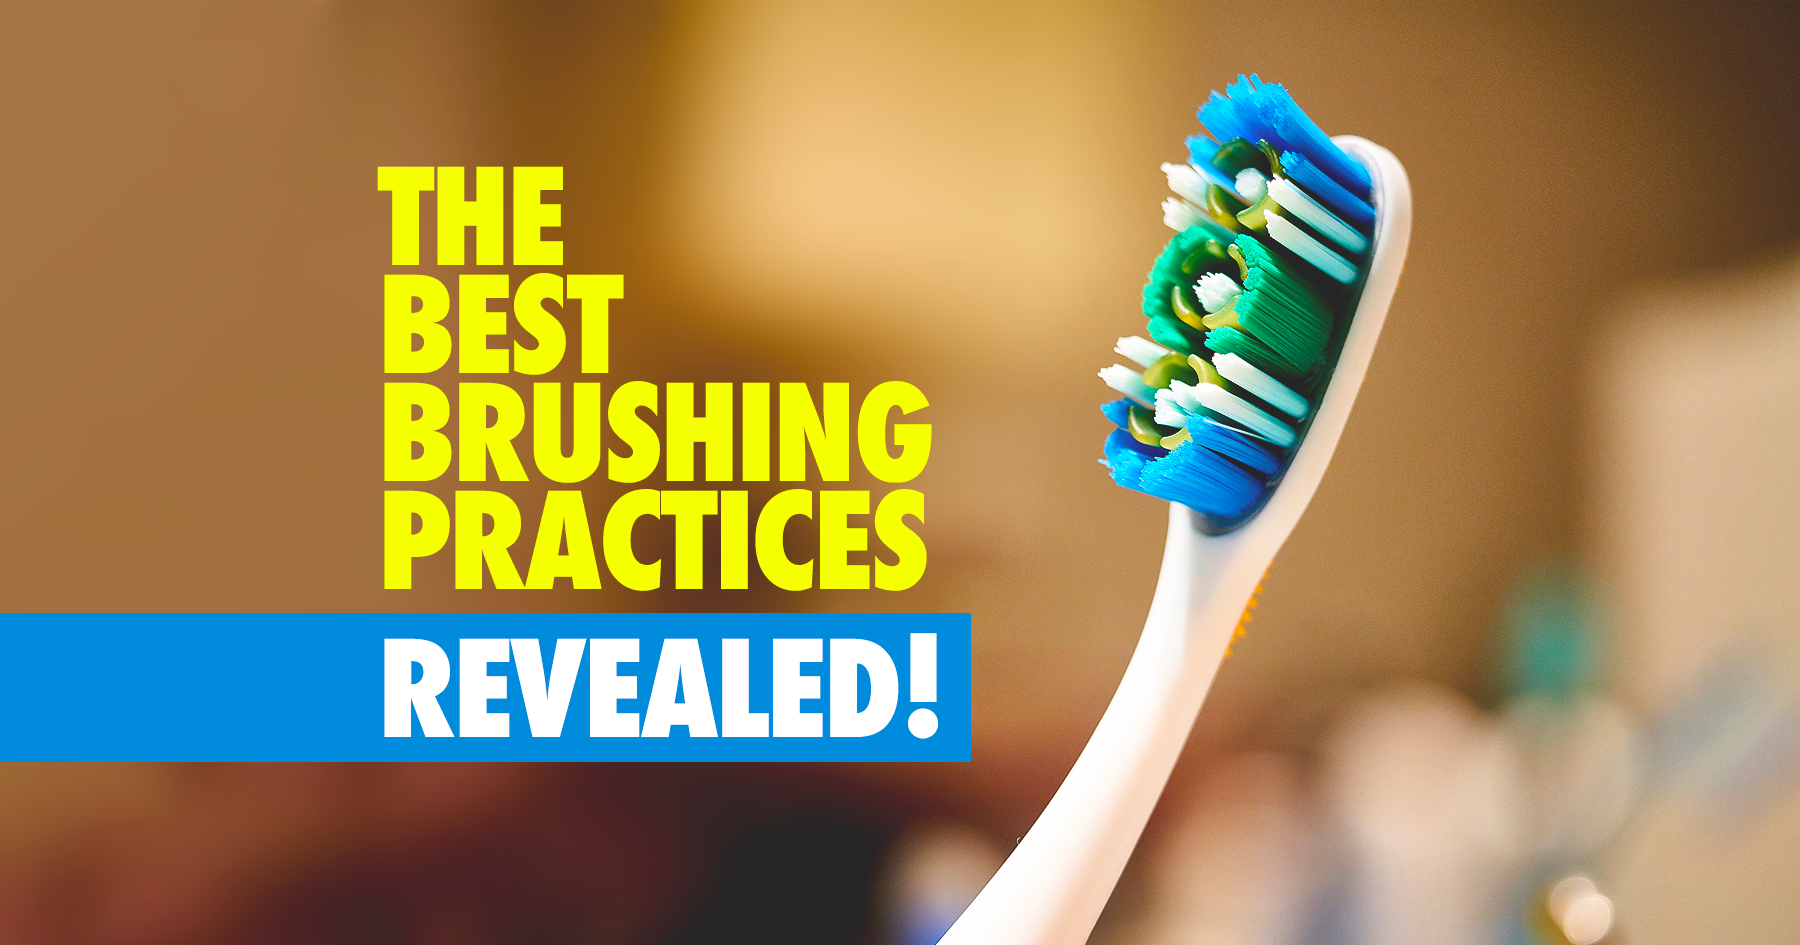 Brushing Best Practices